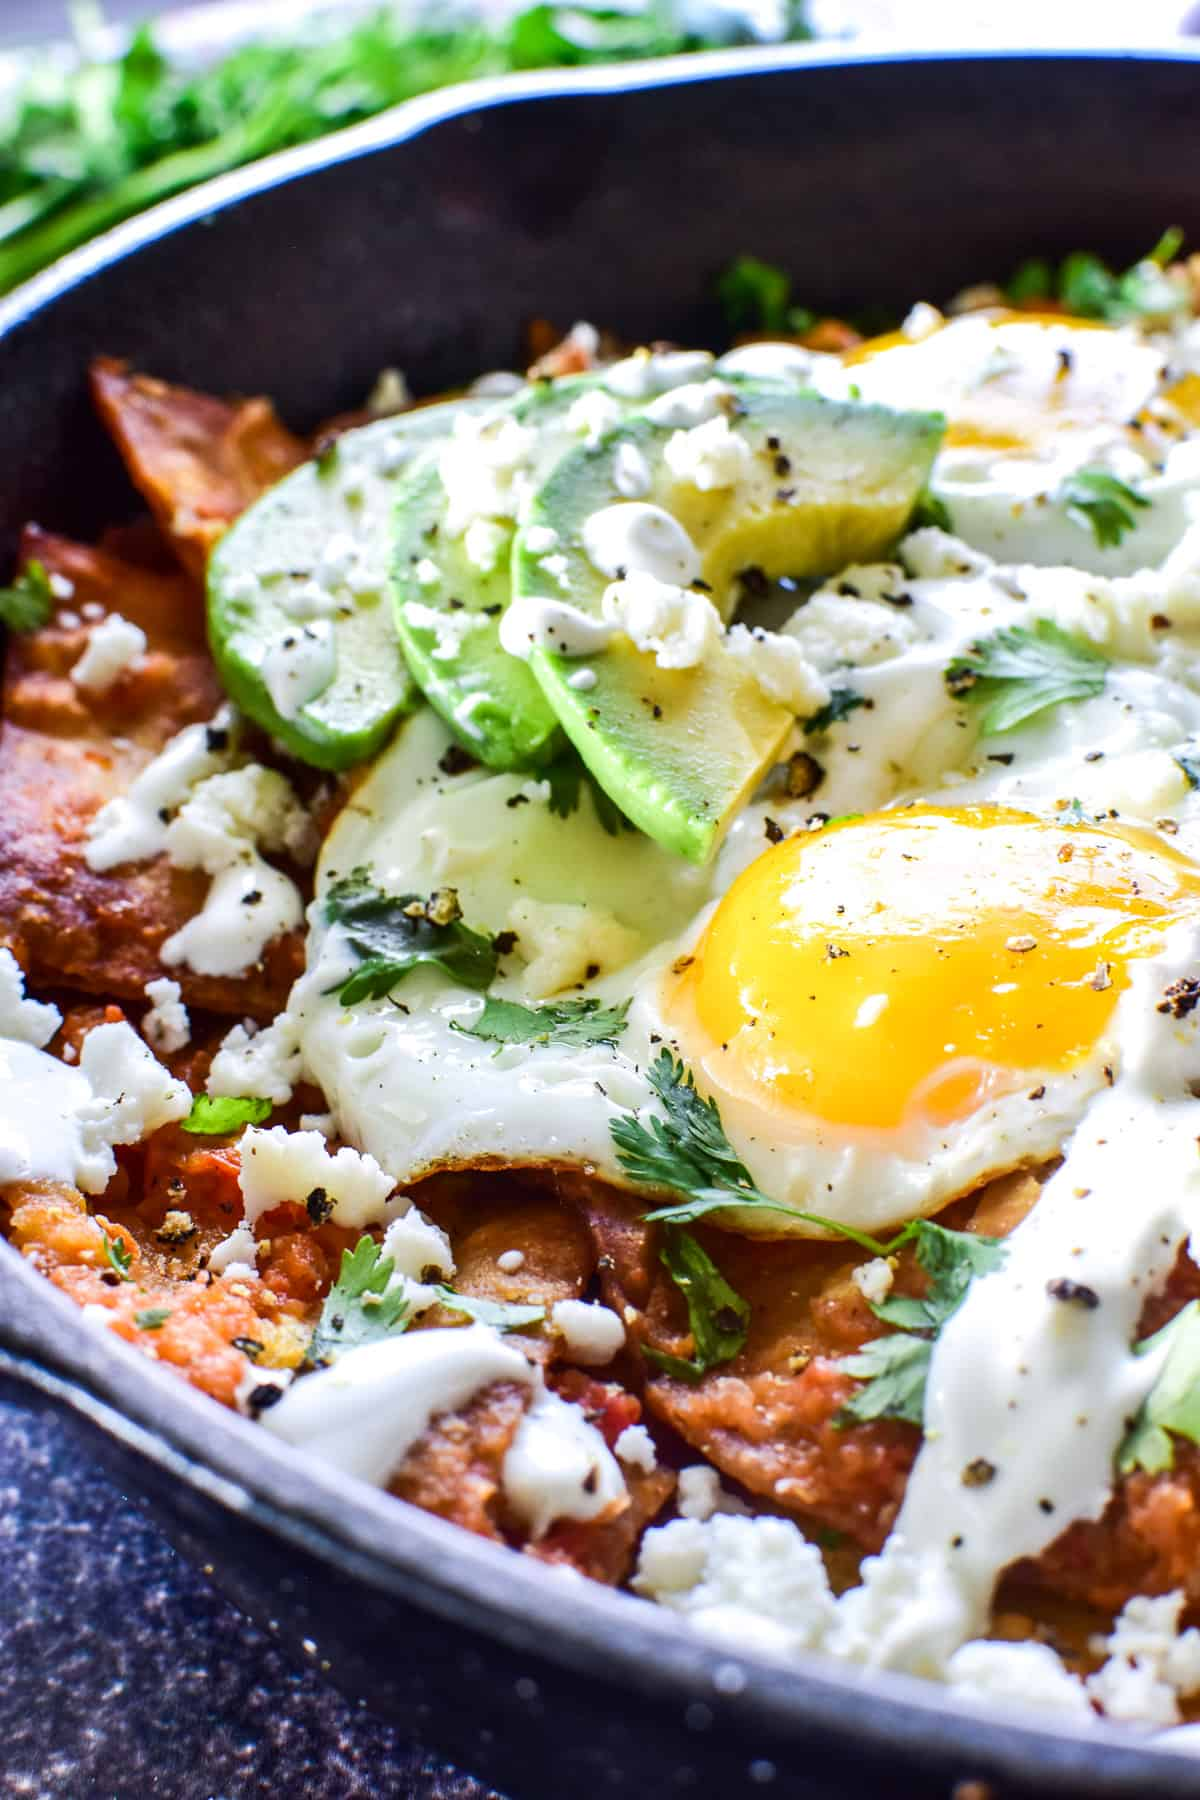 Close up of Chilaquiles with eggs, avocado, sour cream, and cheese